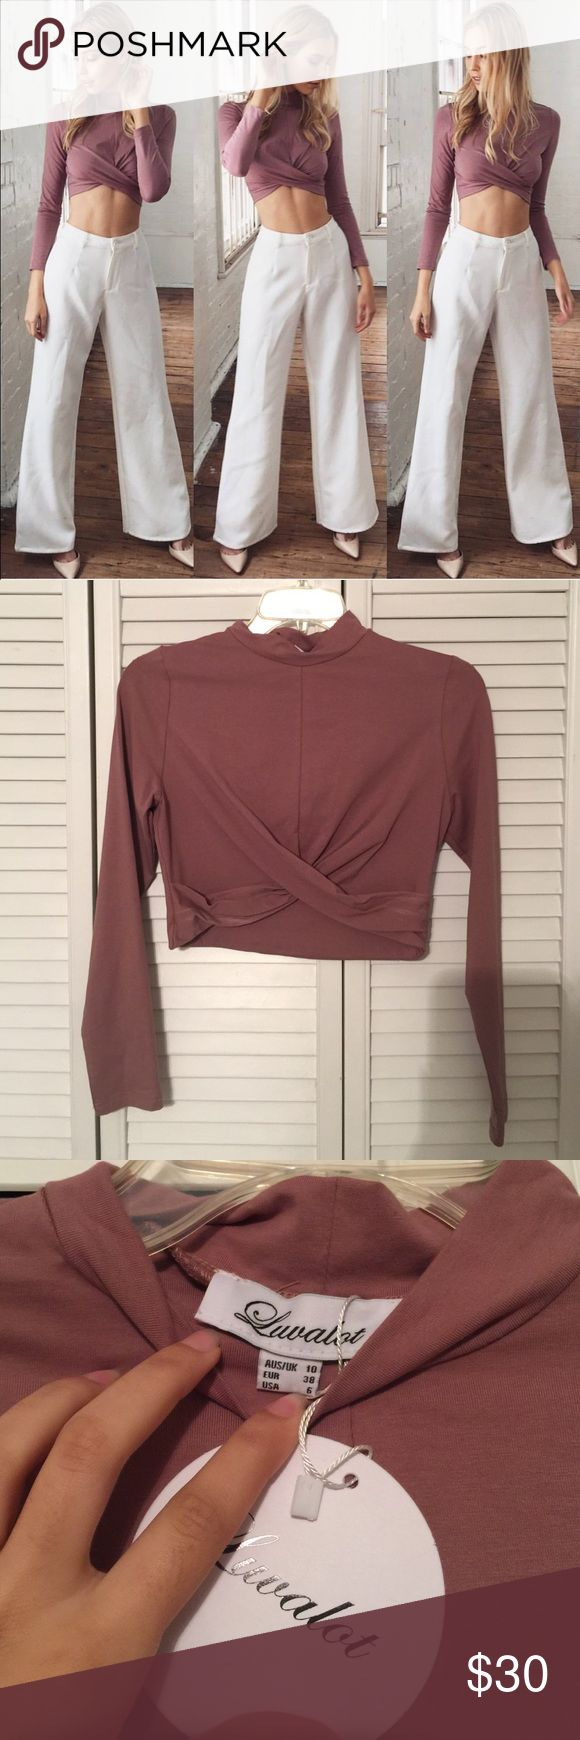 BNWT Mura boutique long sleeve crop top Super cute and color is so on trend for spring, purchased from Mura boutique Australia, listed as sabo skirt because of similar style, about a month ago and just haven't worn it. Fits tight but true to size, best for a small/xs Sabo Skirt Tops Crop Tops